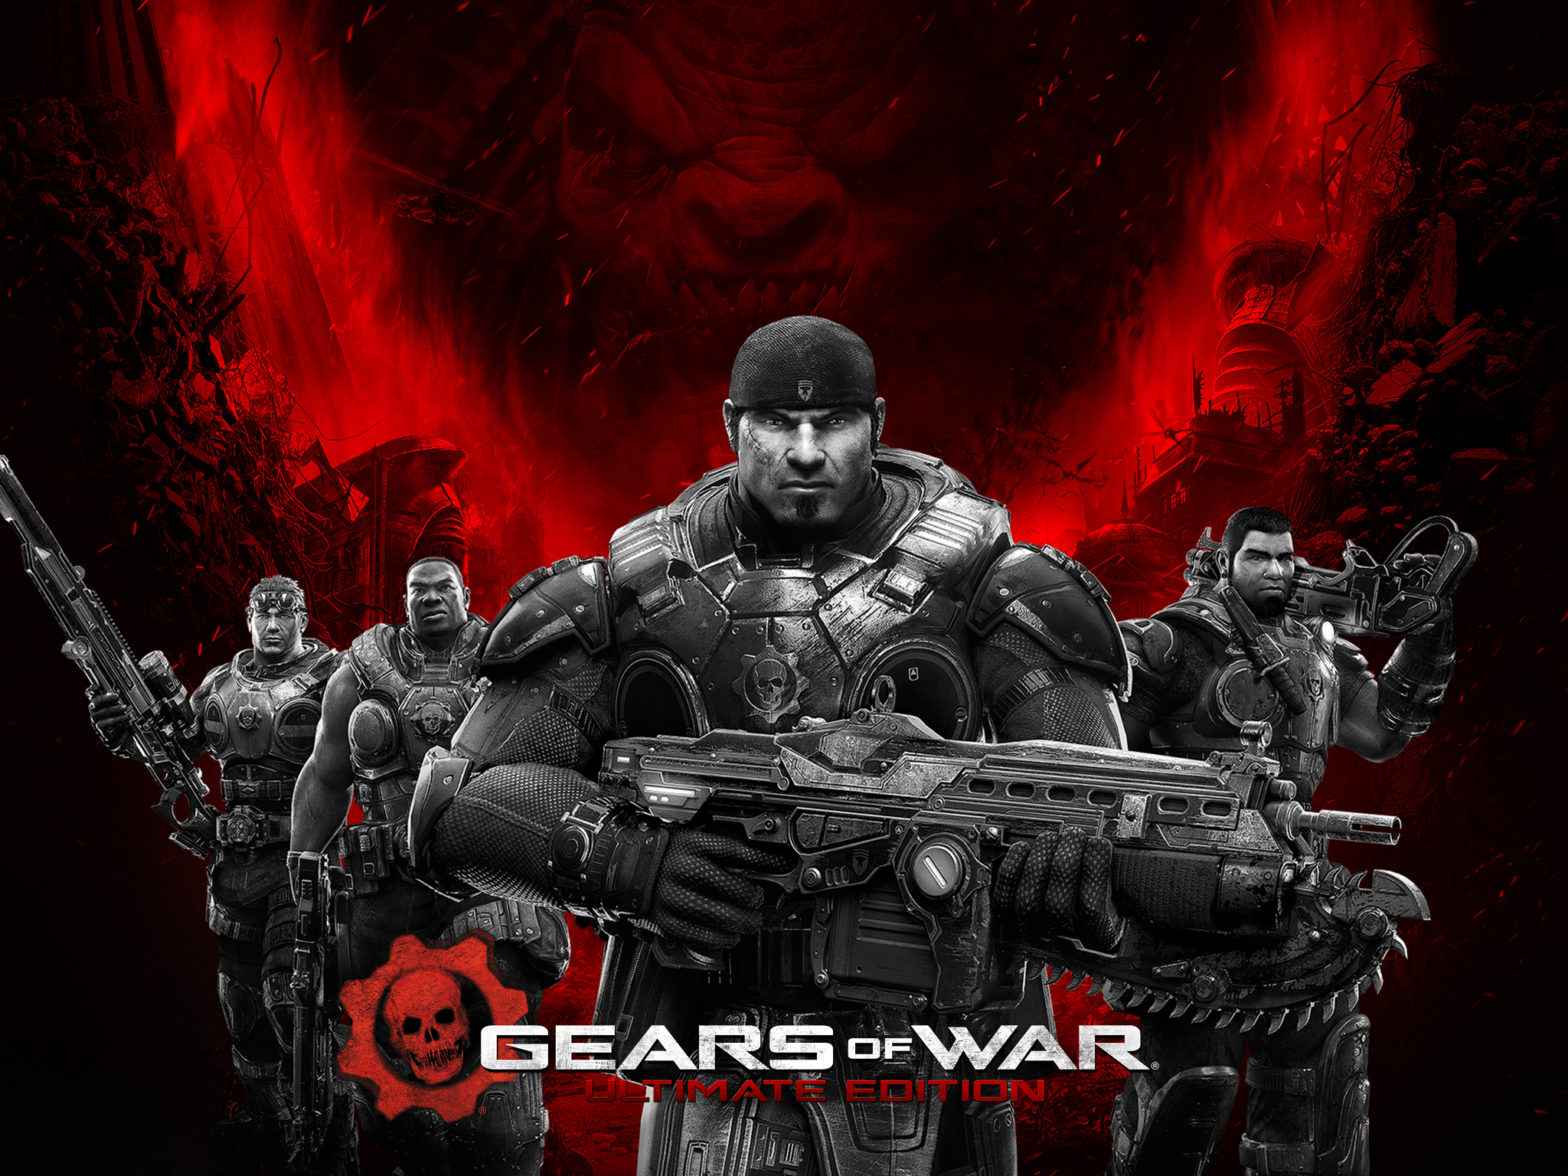 Gears of War: Ultimate Editionに向けて。